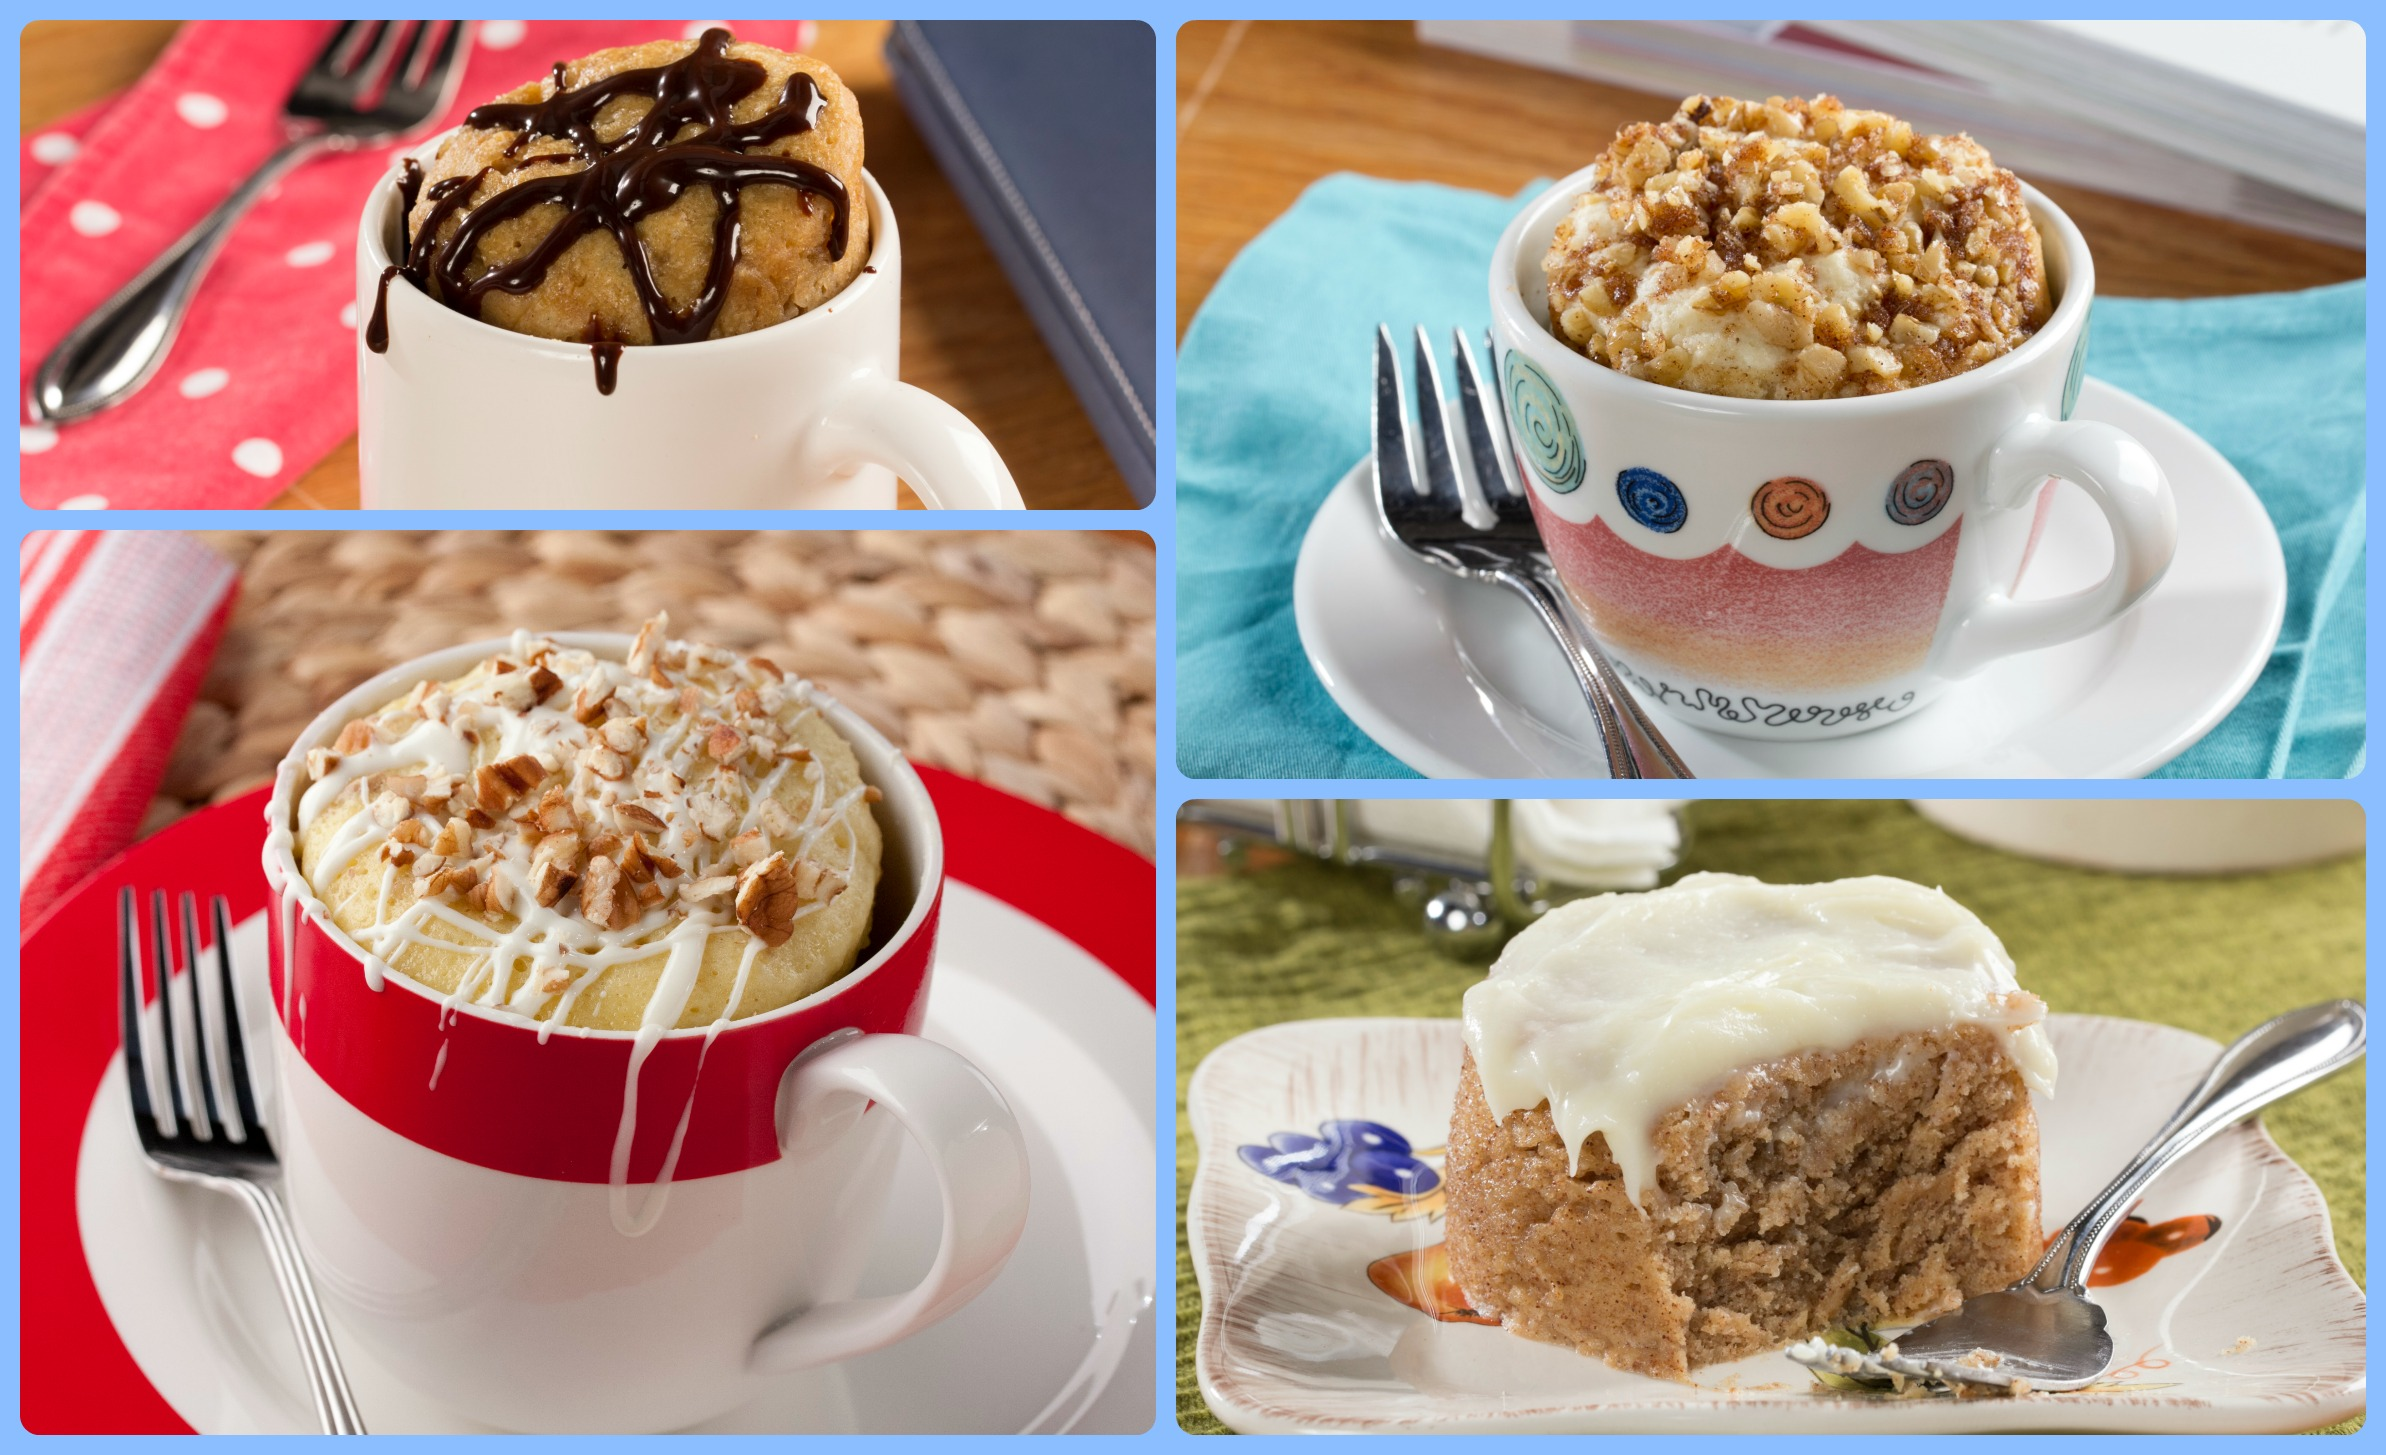 It's Dessert For One! - Mr. Food's Blog